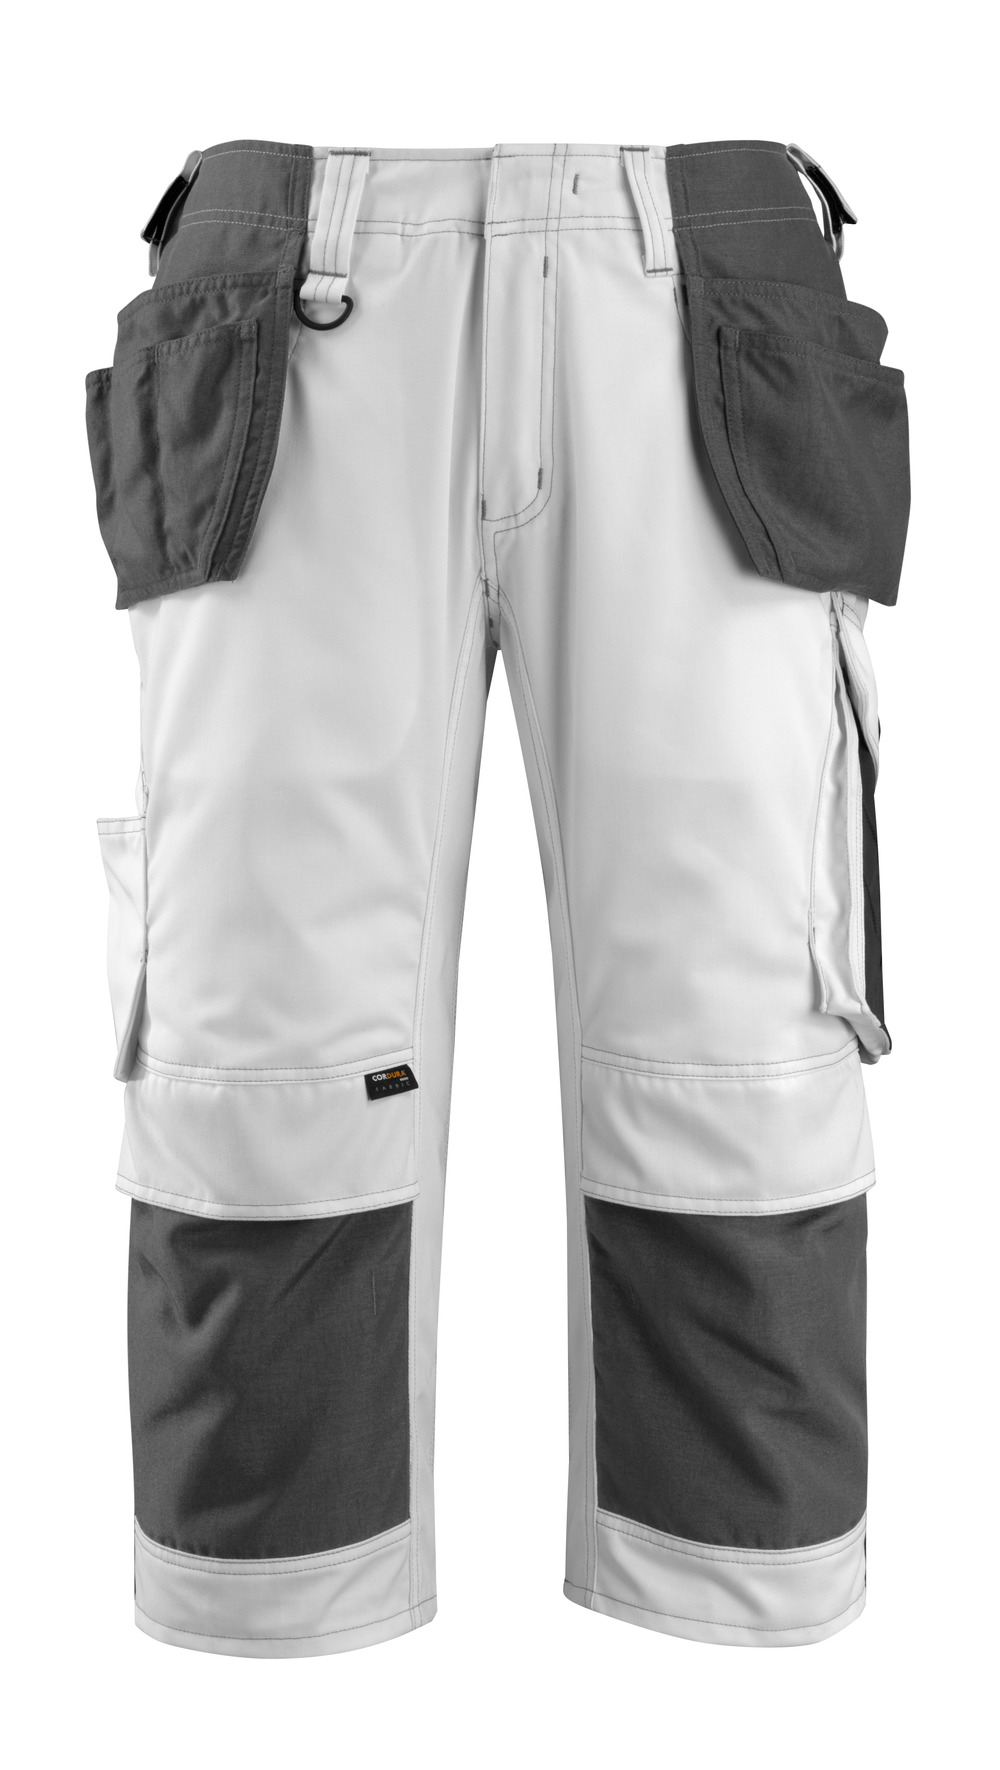 14349-442-0618 ¾ Length Pants with kneepad pockets and holster pockets - white/dark anthracite